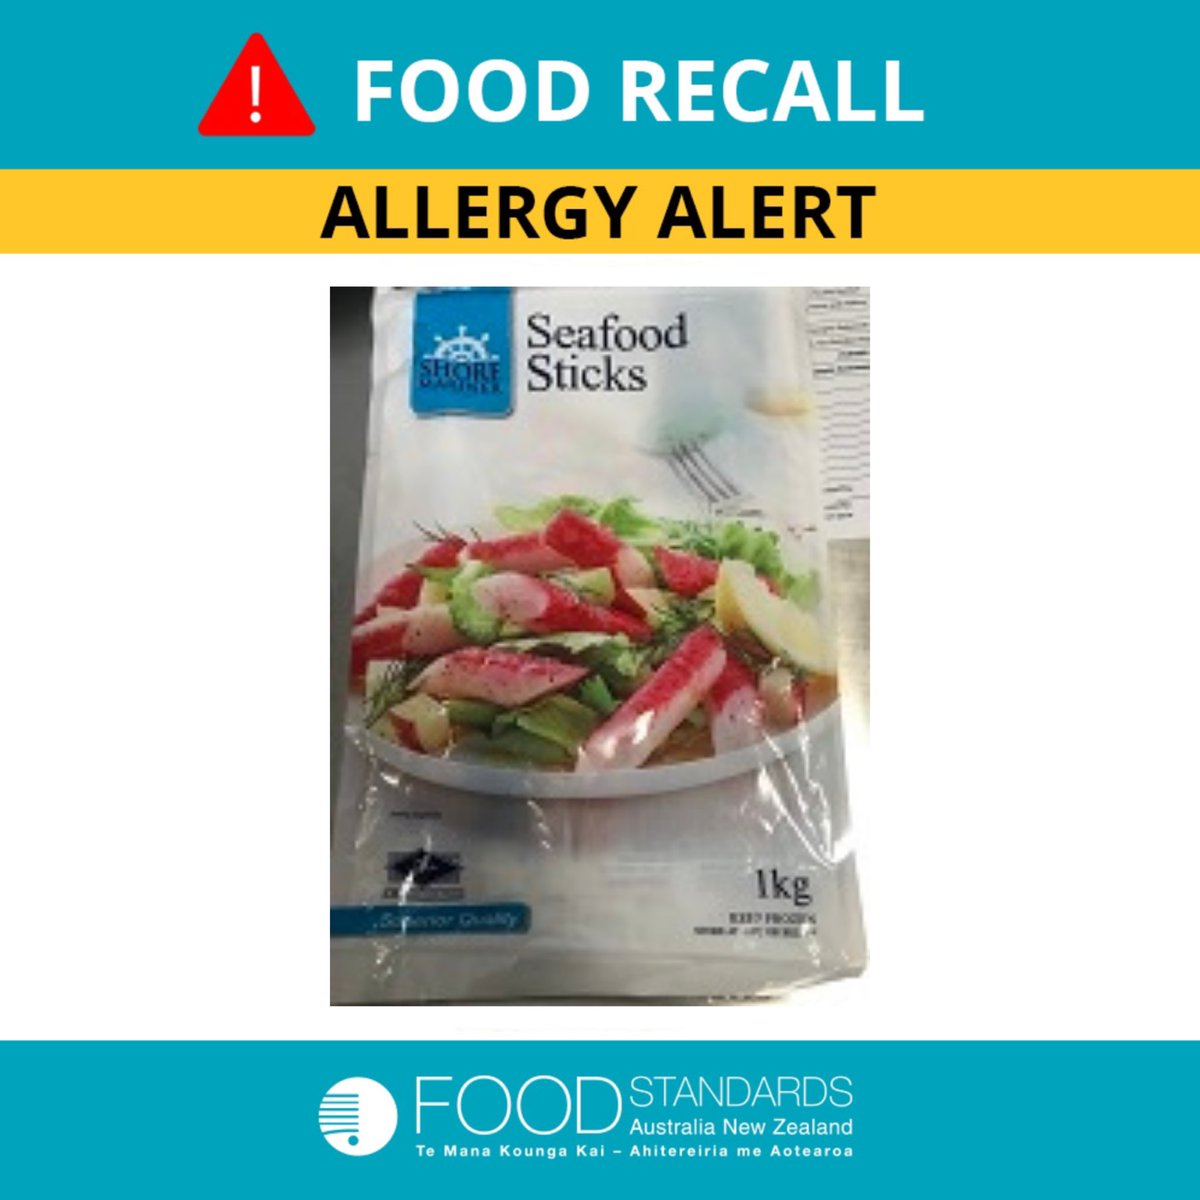 Foodstandardsausnz On Twitter Allergy Alert Shore Mariner Seafood Sticks 1kg With Best Before Dates Up To And Including Jun 2022 Are Being Recalled Due To An Undeclared Allergen Egg The